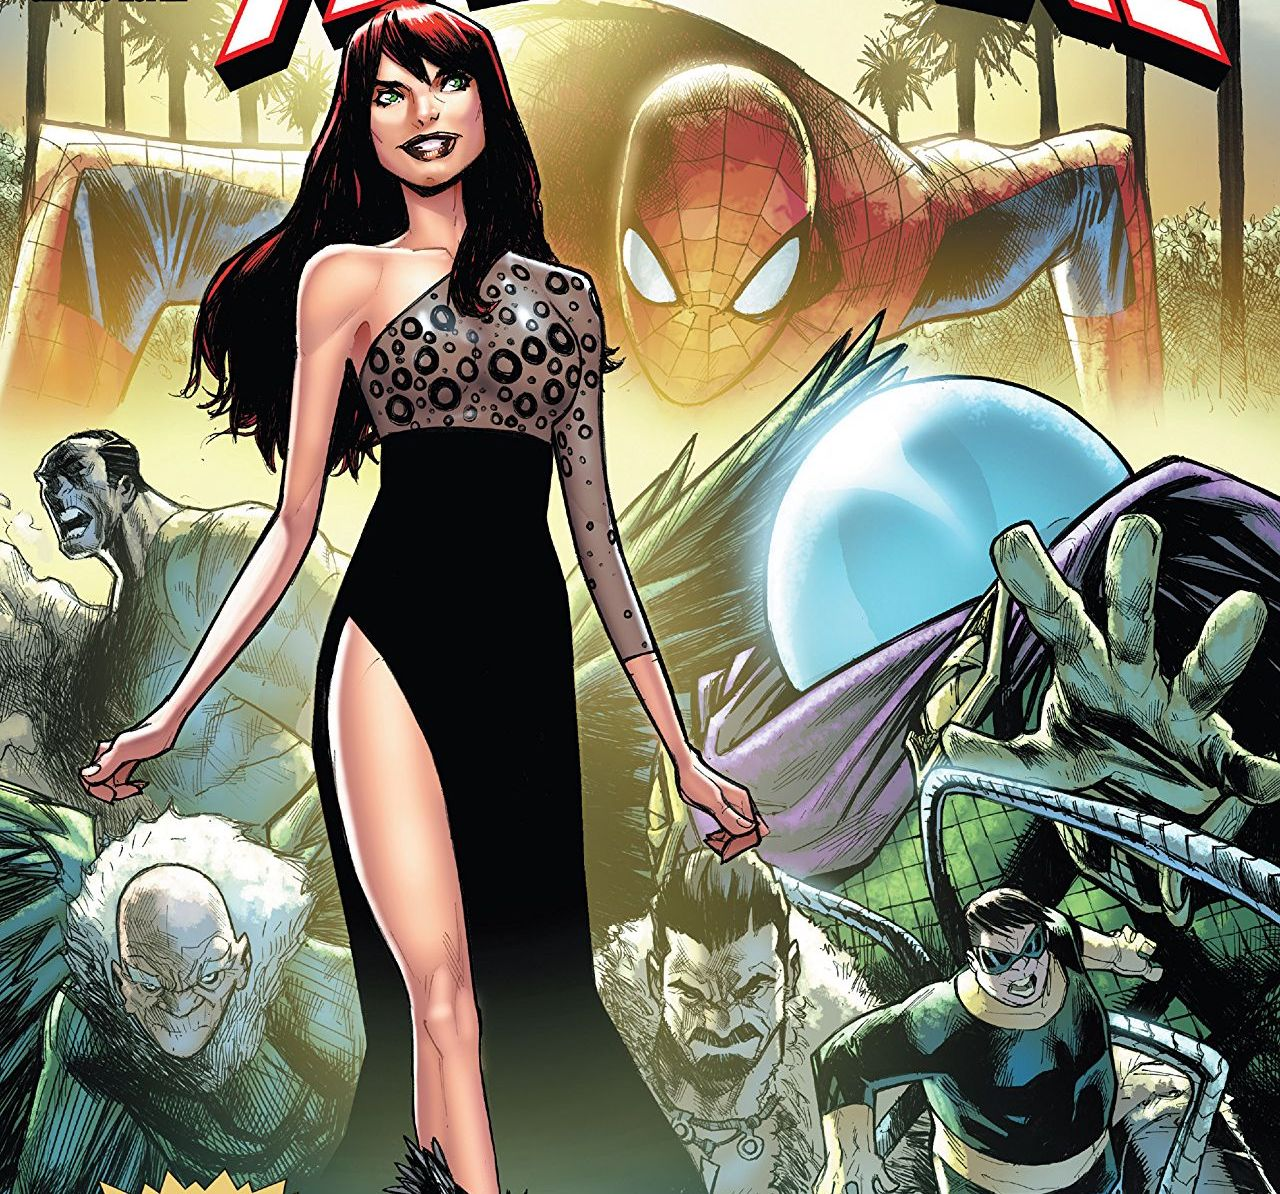 The Amazing Mary Jane has a strong identity and a crackerjack wit.